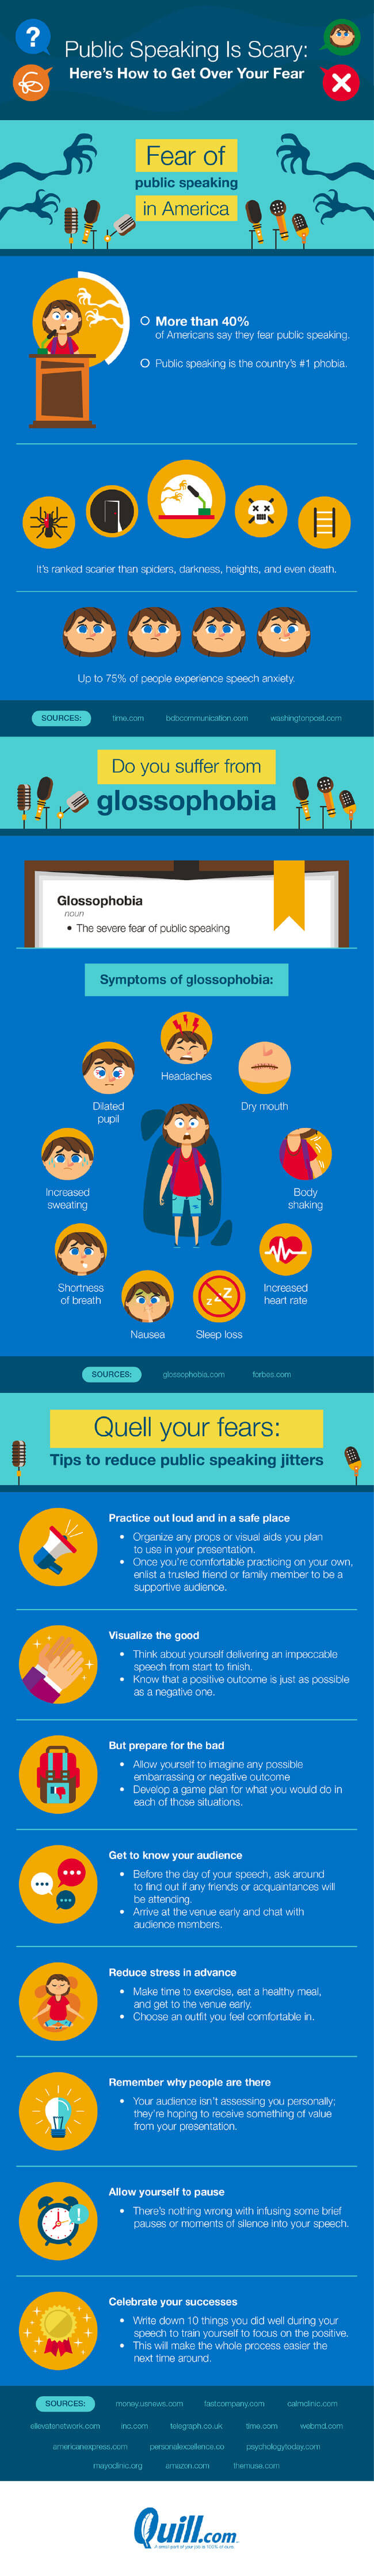 Image titled public speaking is scary here s how to get over your fear